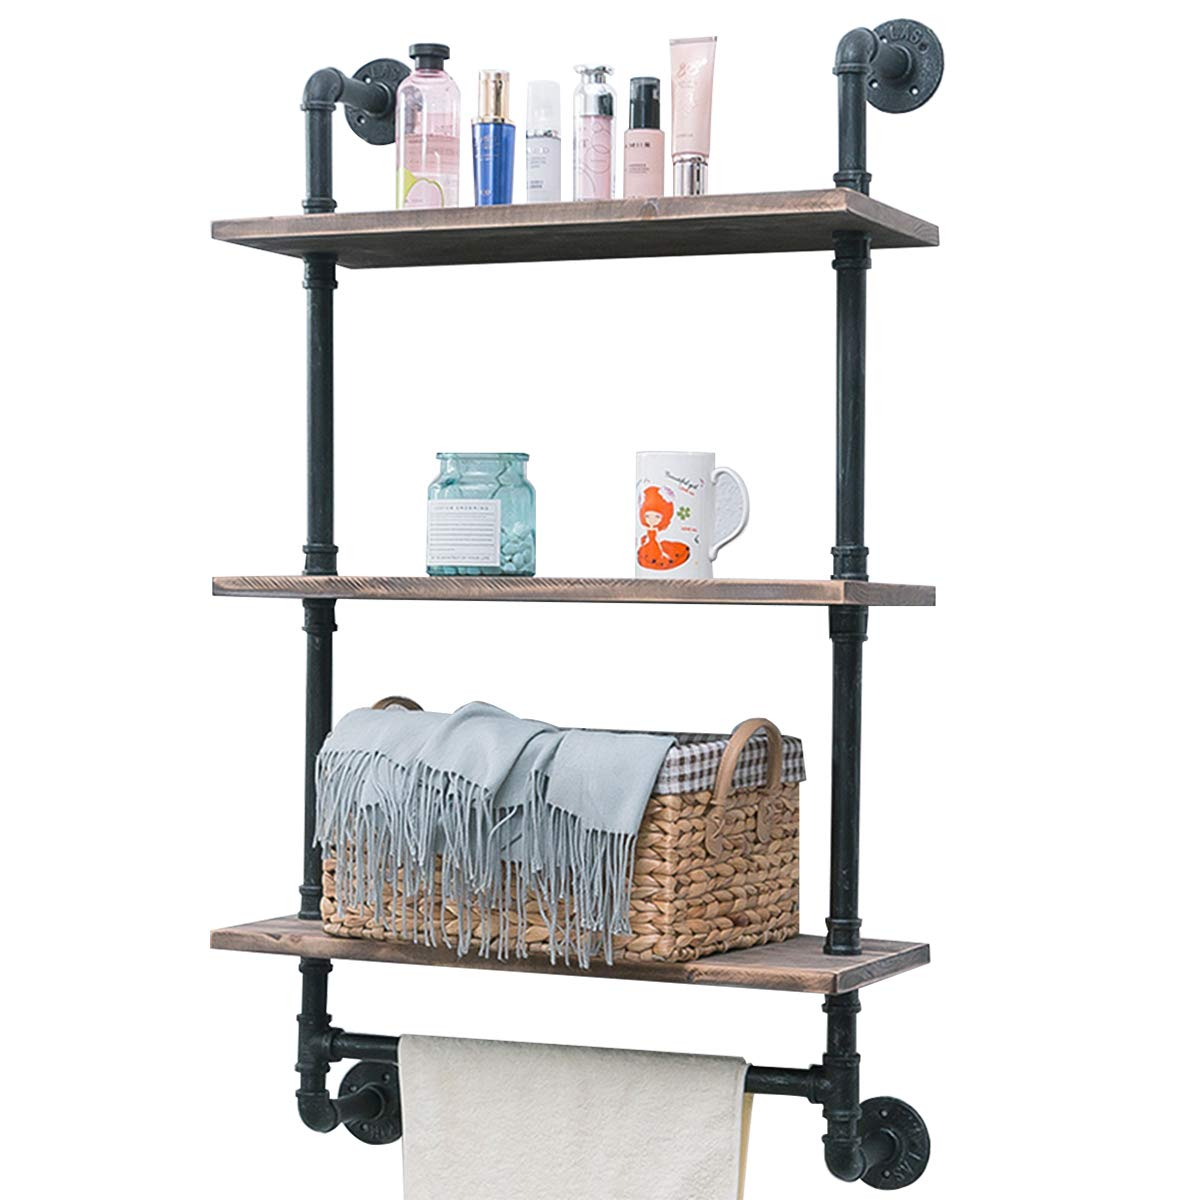 Industrial Pipe Shelf,Rustic Wall Shelf with Towel Bar,24 Towel Racks for Bathroom,3 Tiered Pipe Shelves Wood Shelf Shelving MBQQ